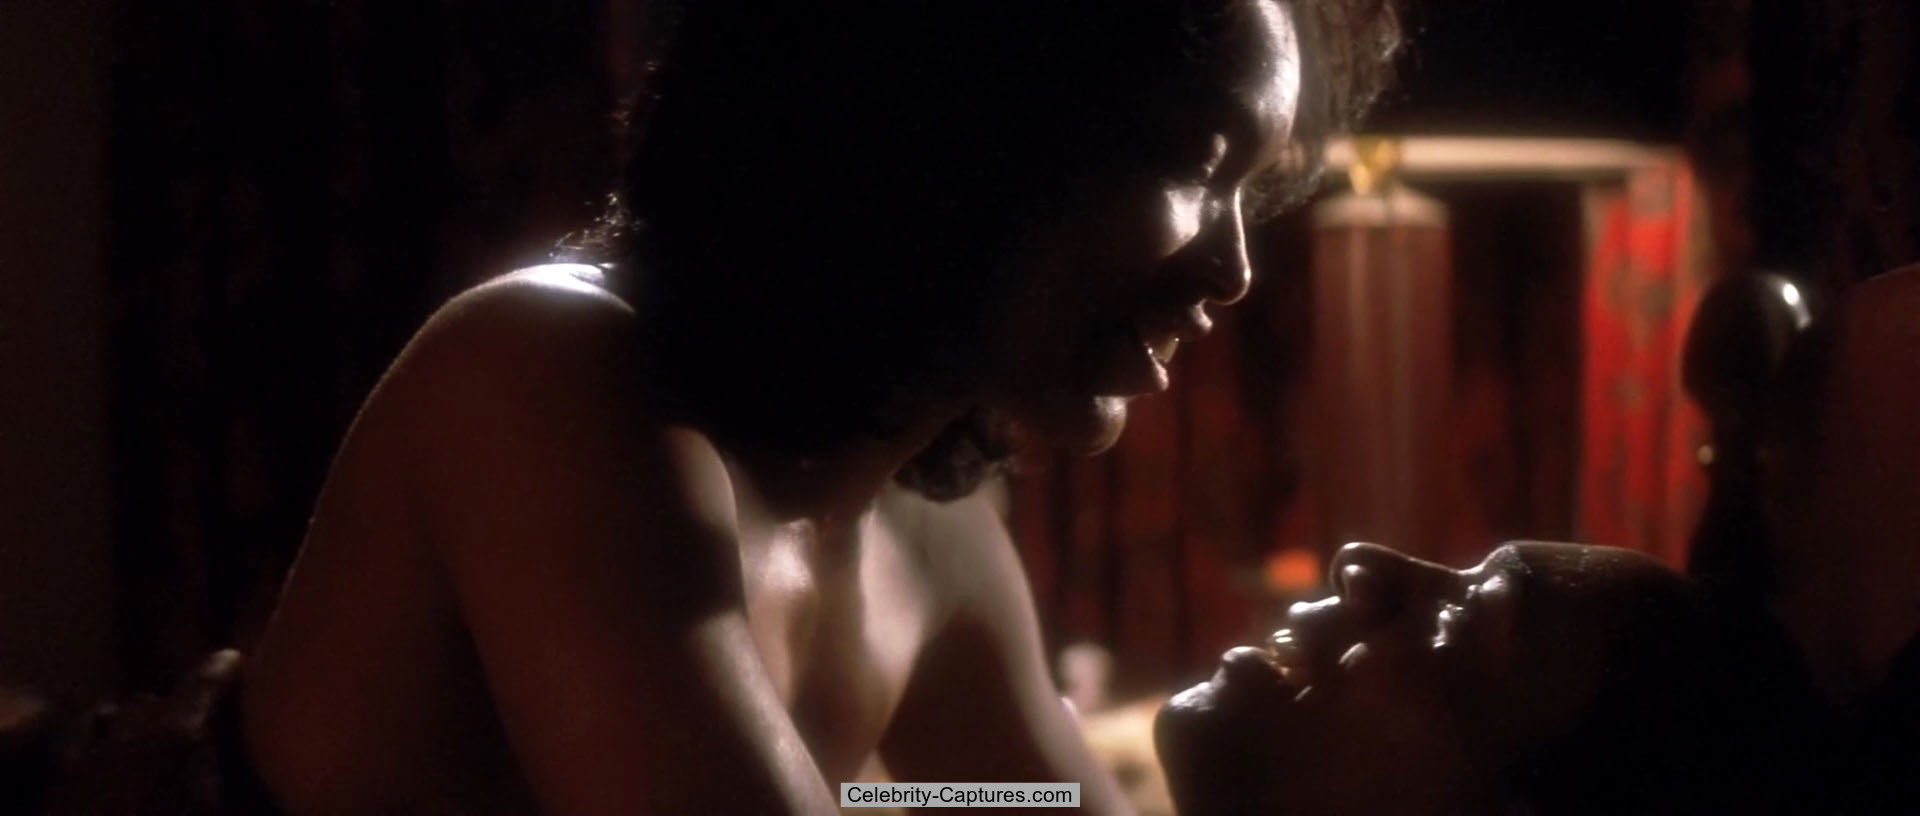 Angela bassett naked in thong, hentia girls suck fathers dick